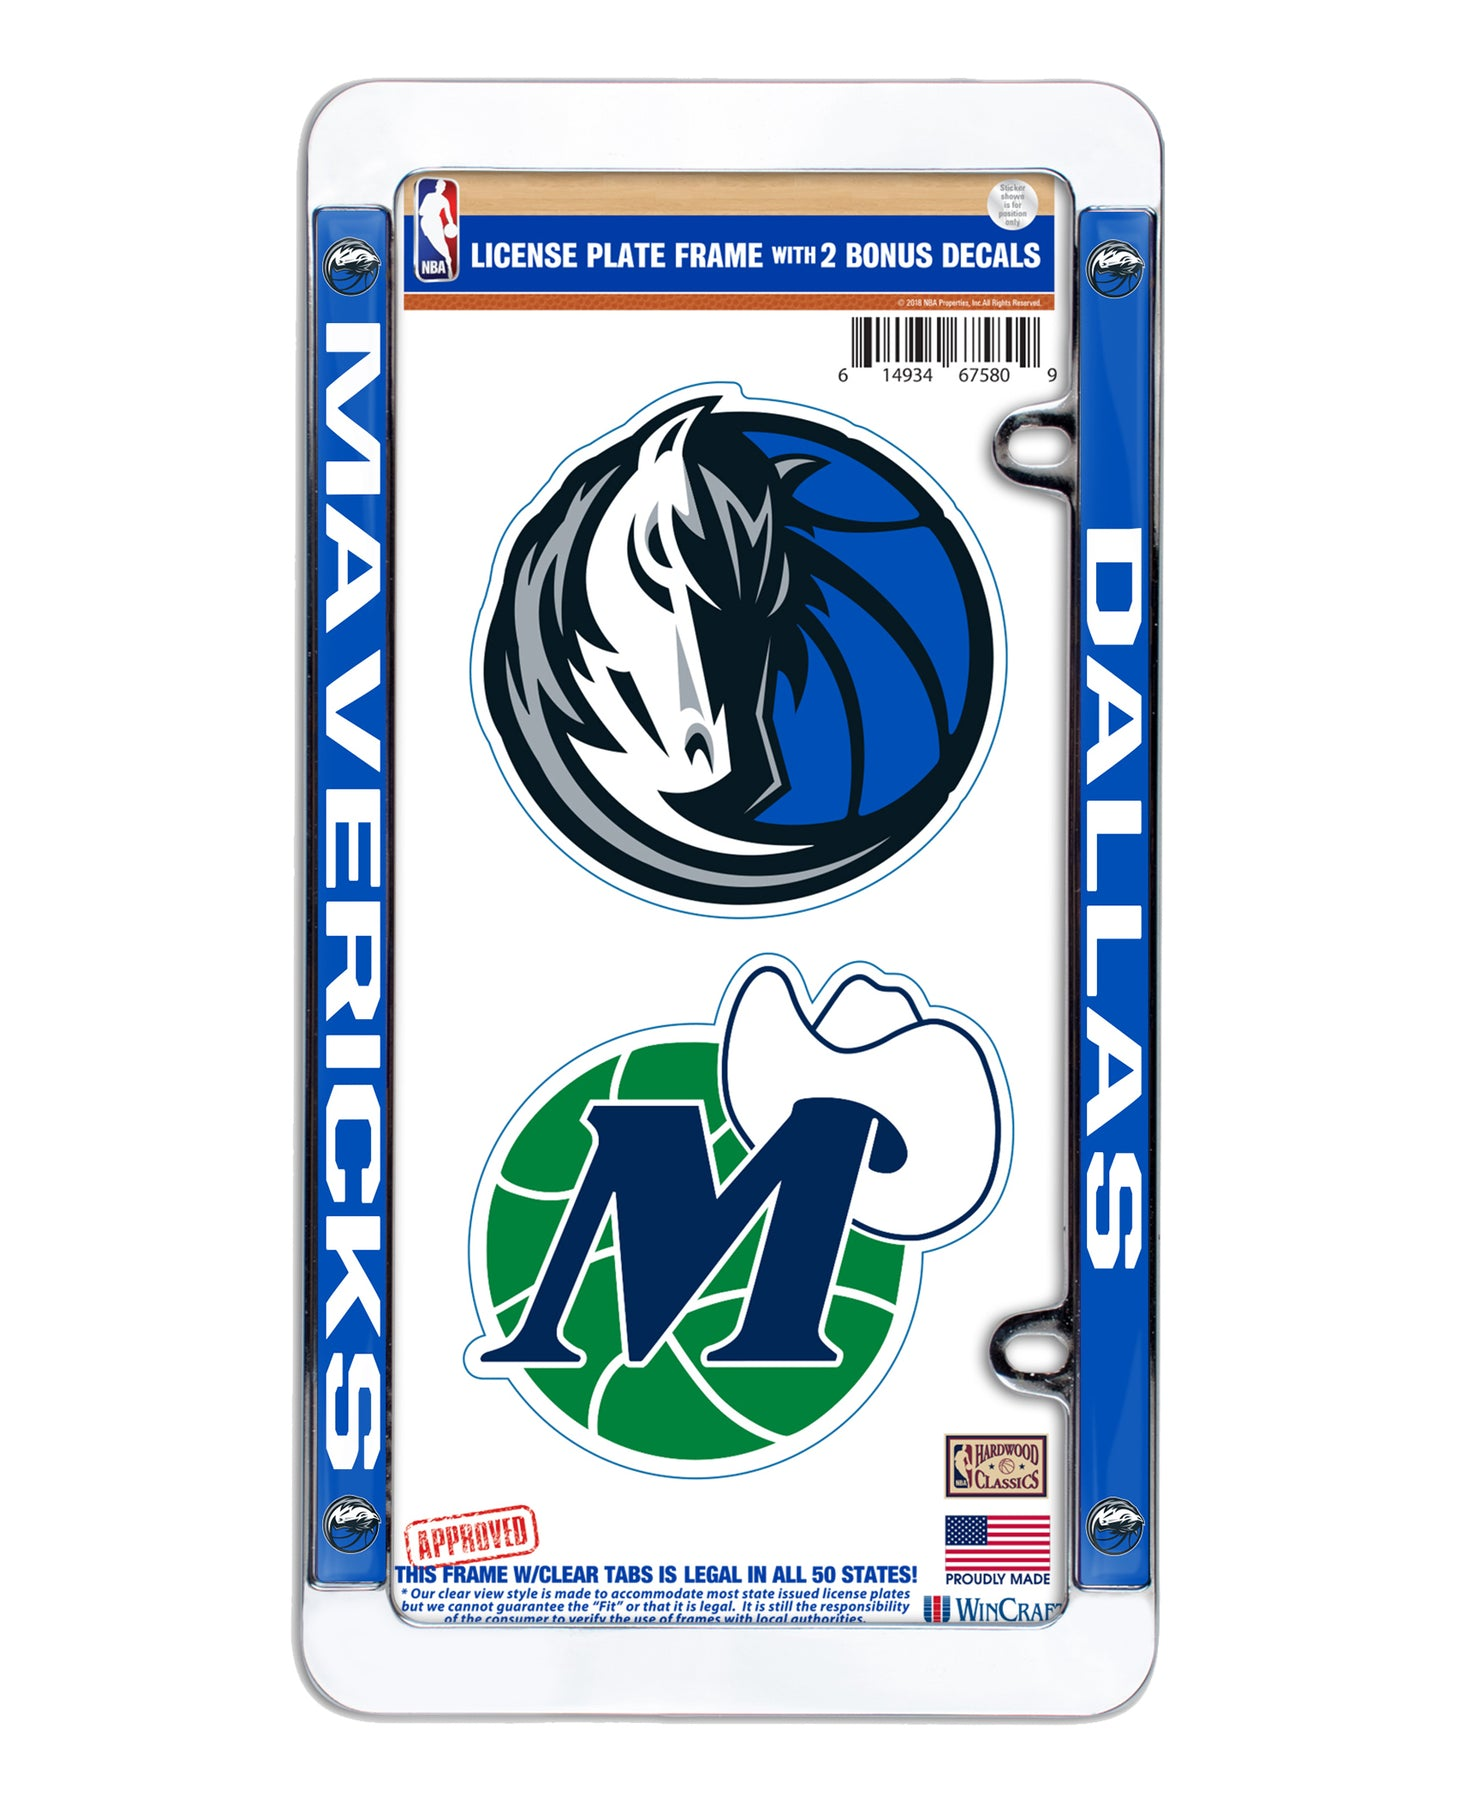 DALLAS MAVERICKS CAR FRAME & BONUS DECALS – DallasMavs.Shop